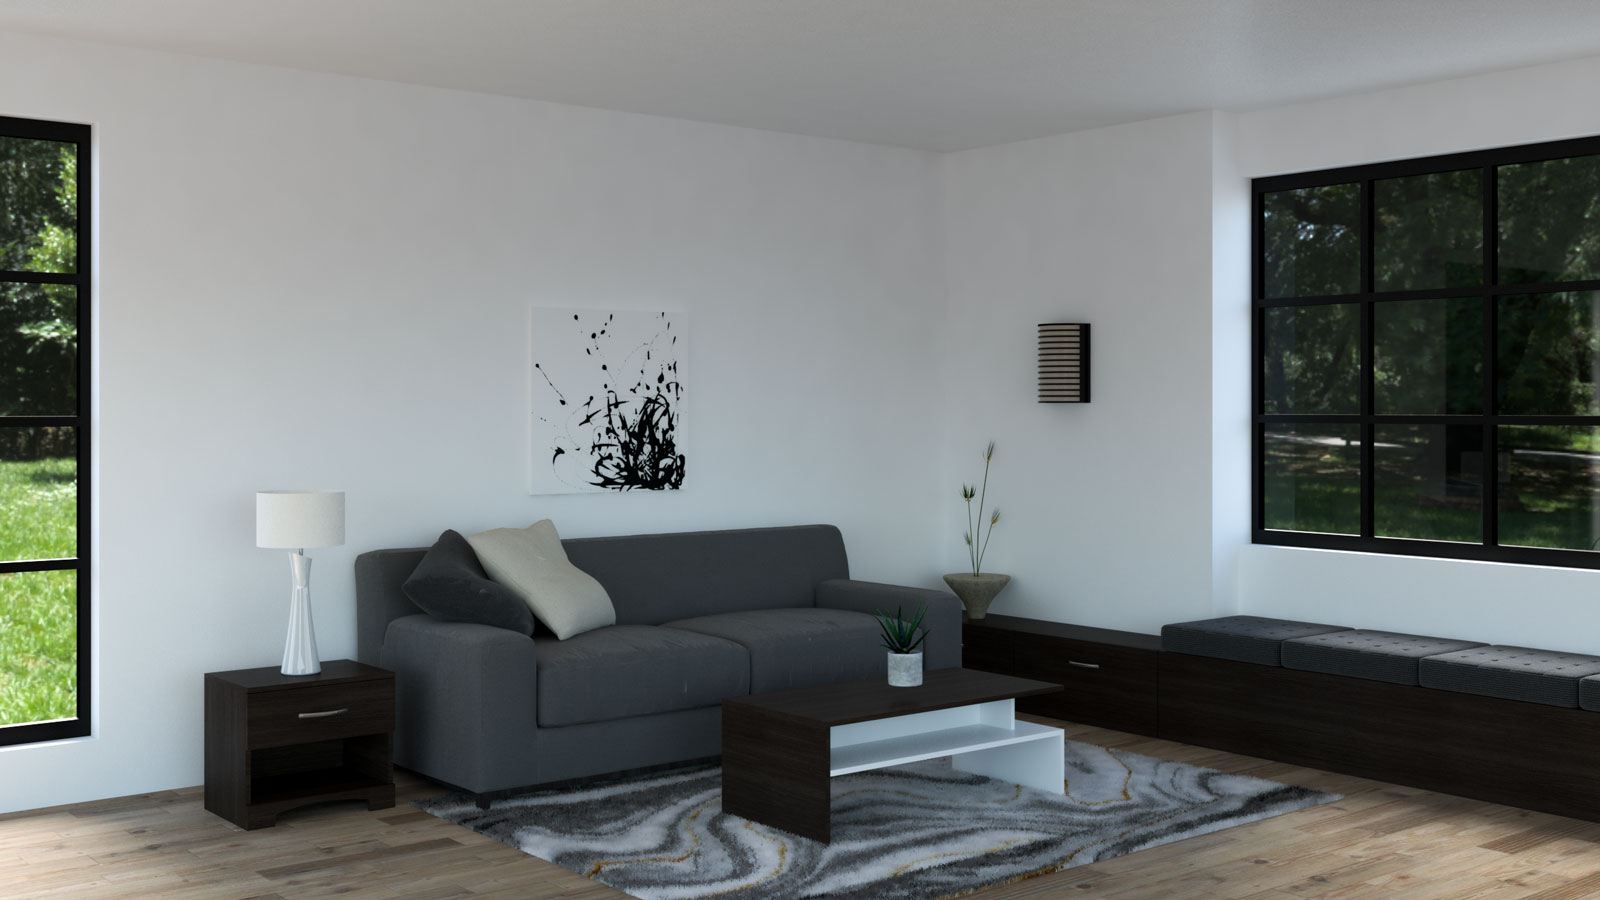 Dark gray couch with espresso furnishings